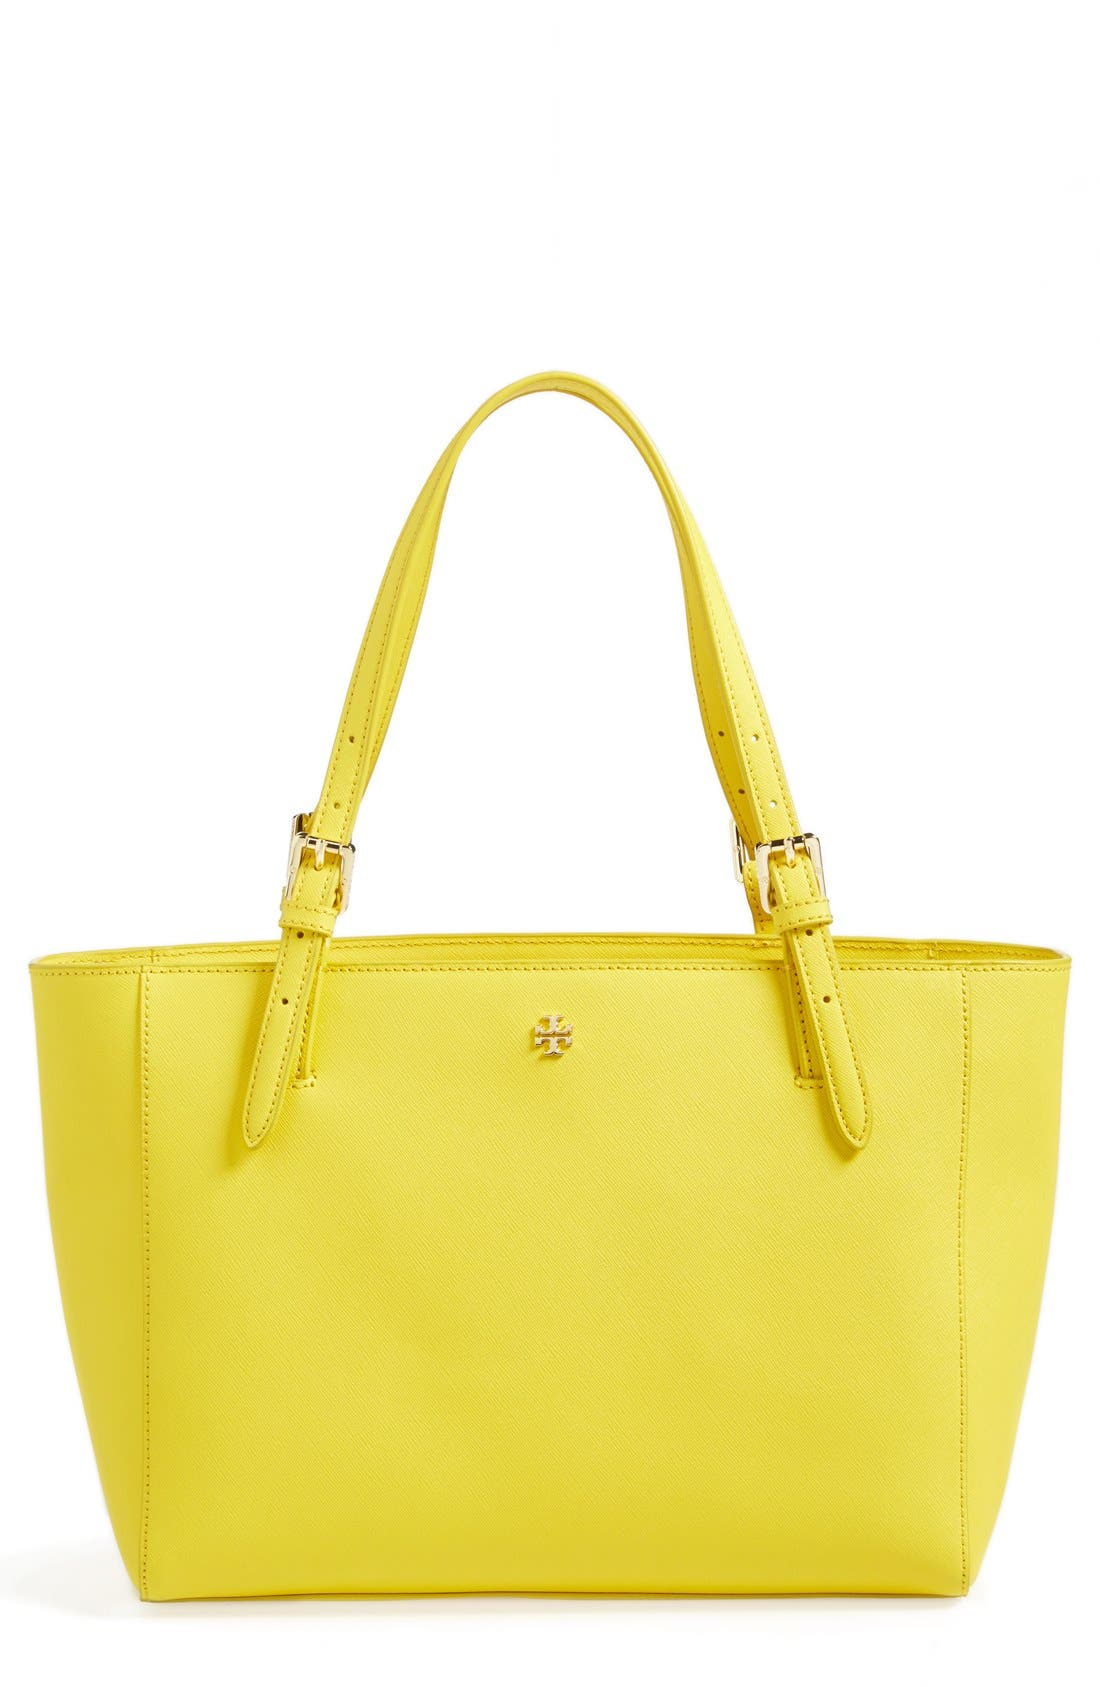 Alternate Image 1 Selected - Tory Burch 'Small York' Leather Tote